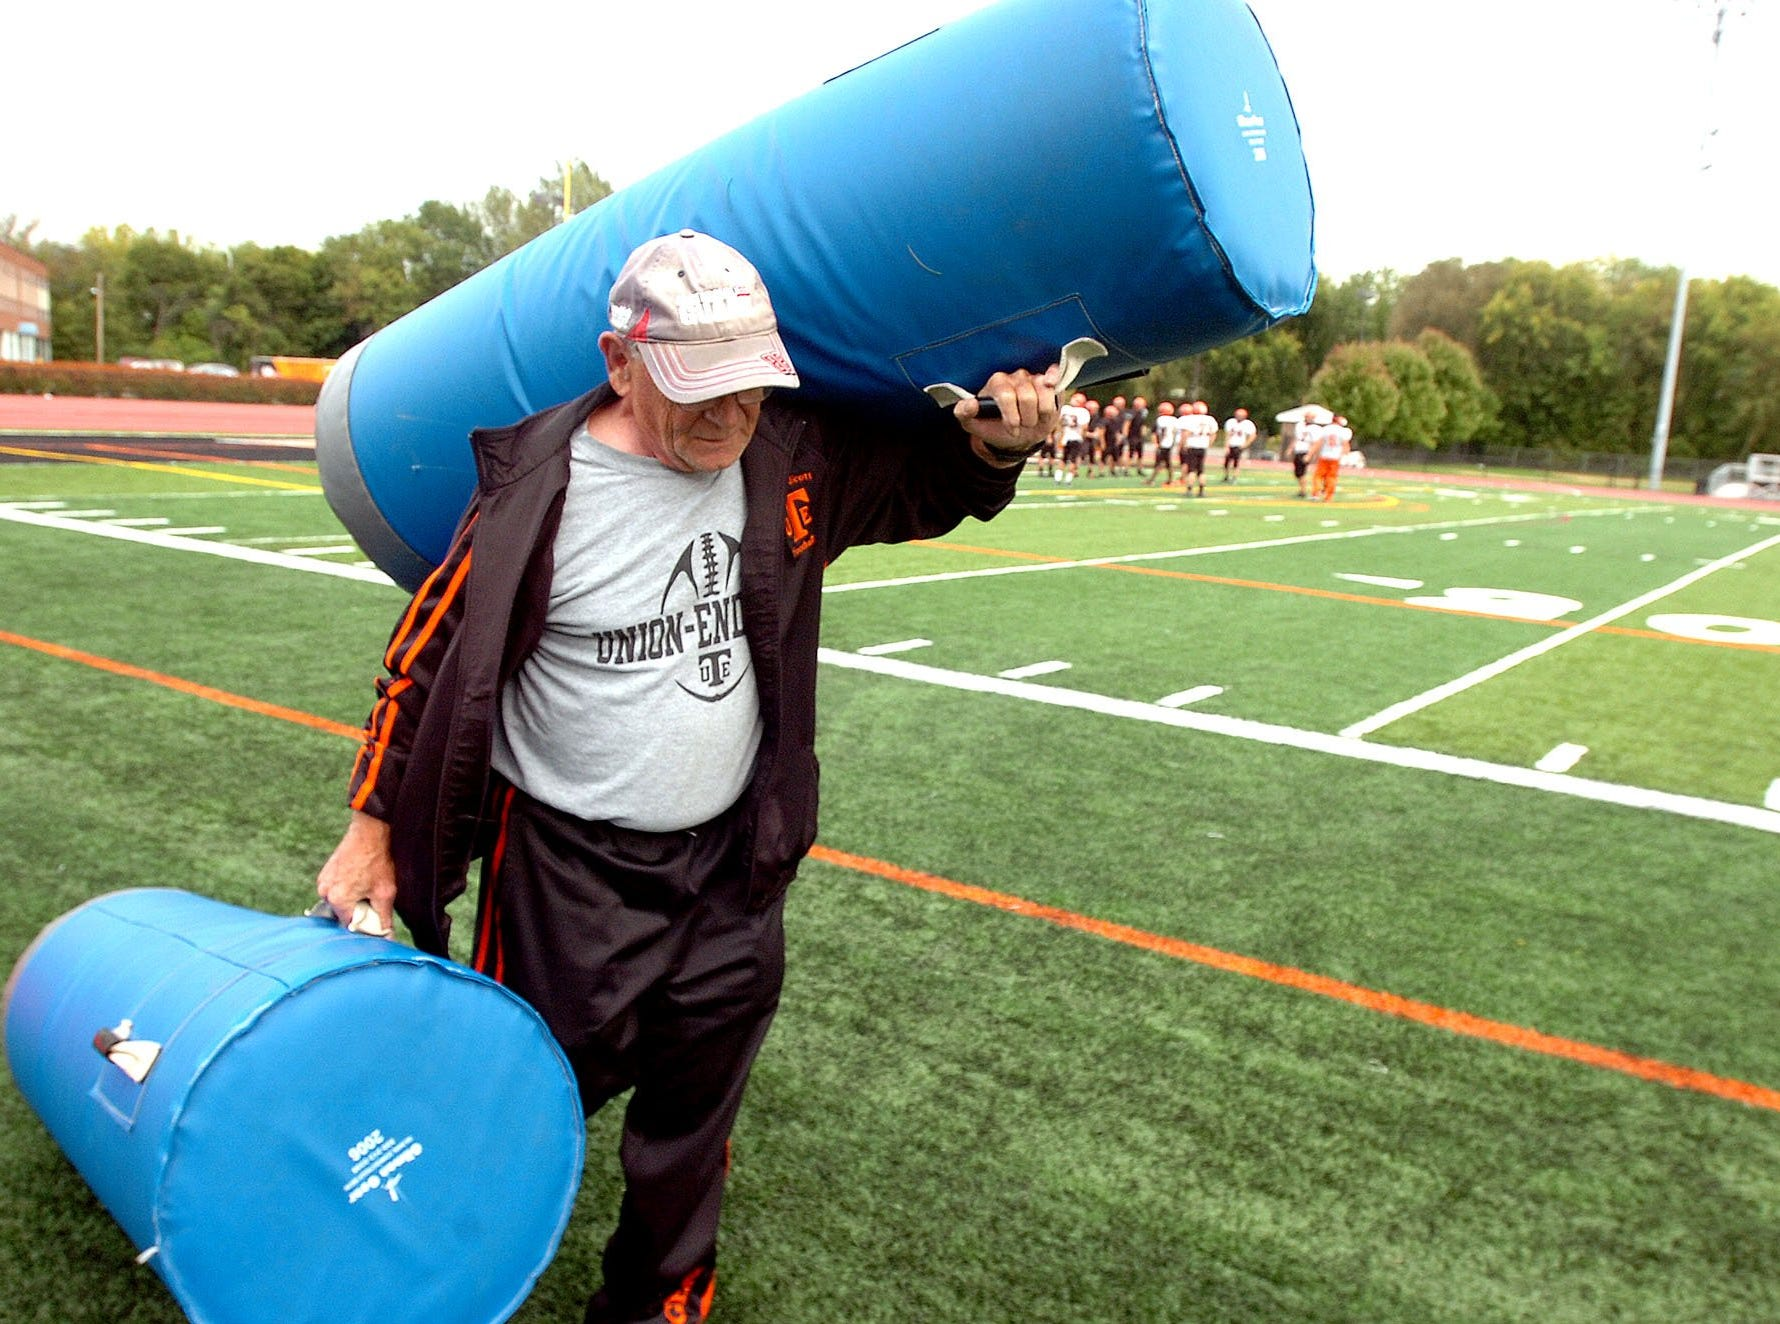 Shorty Bowen carries the cylinder pads off to help keep the football field clear during practice at Union-Endicott. During game nights, Bowen makes sure the visiting sideline is also set, not only the Tigers' side.